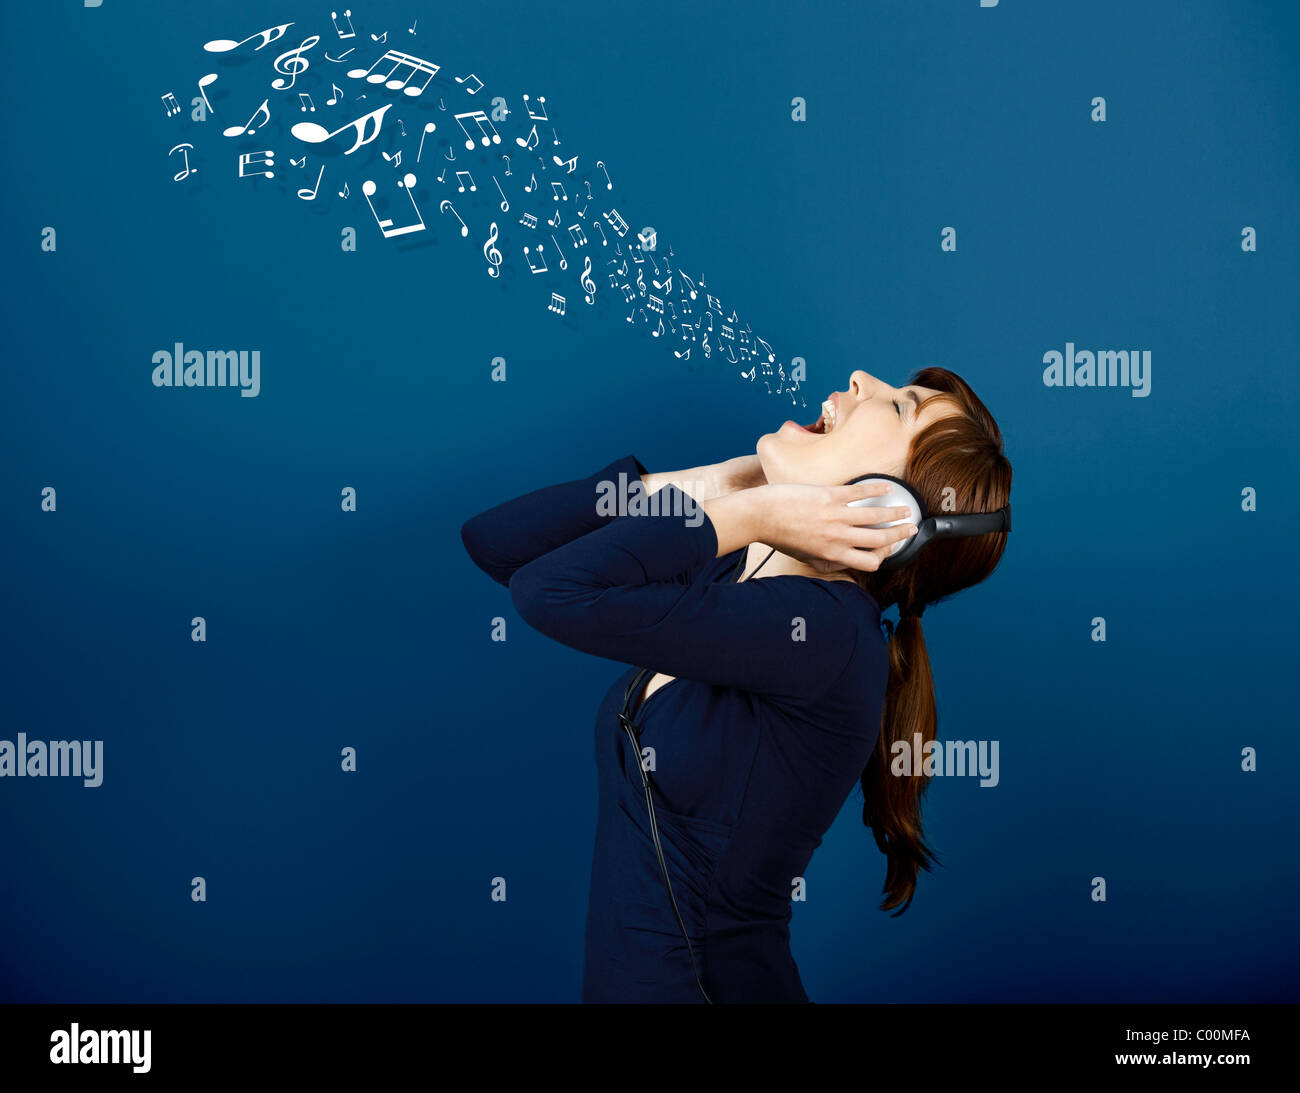 Young woman singing and listen music with musical notes getting out of her mouth - Stock Image